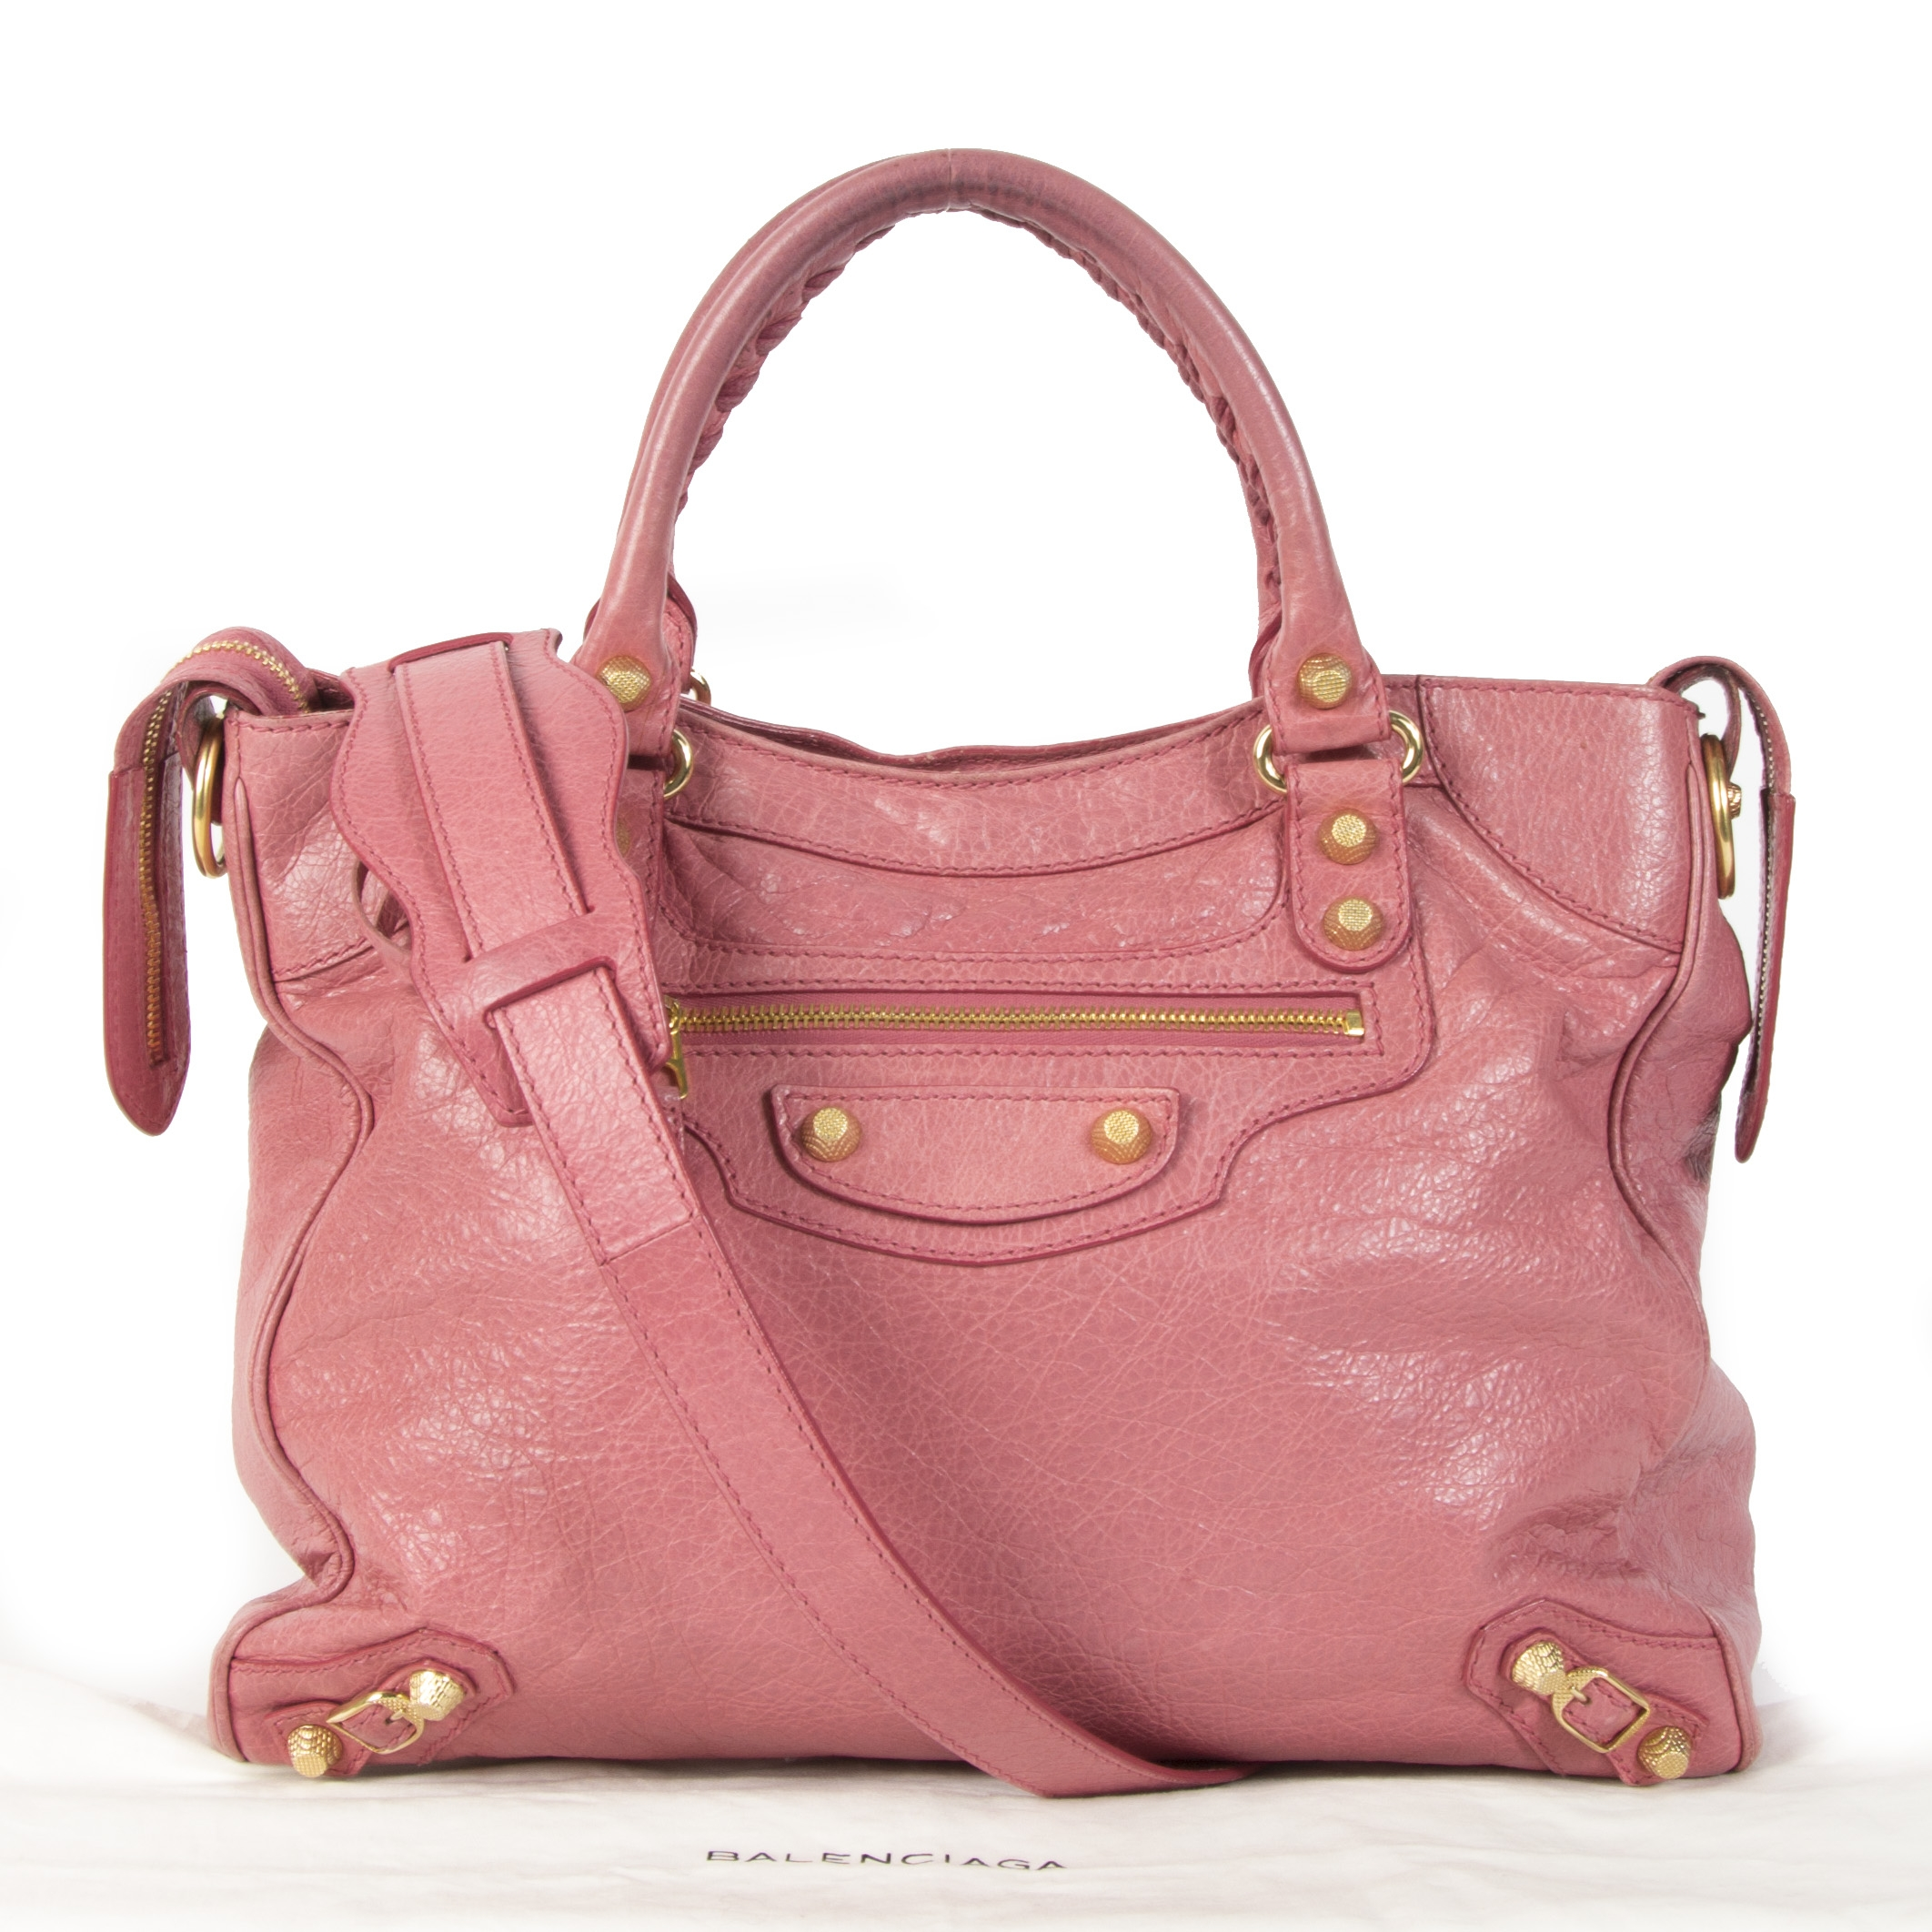 Authentique seconde main vintage Balenciaga Pink Leather Vélo Bag achète en ligne webshop LabelLOV